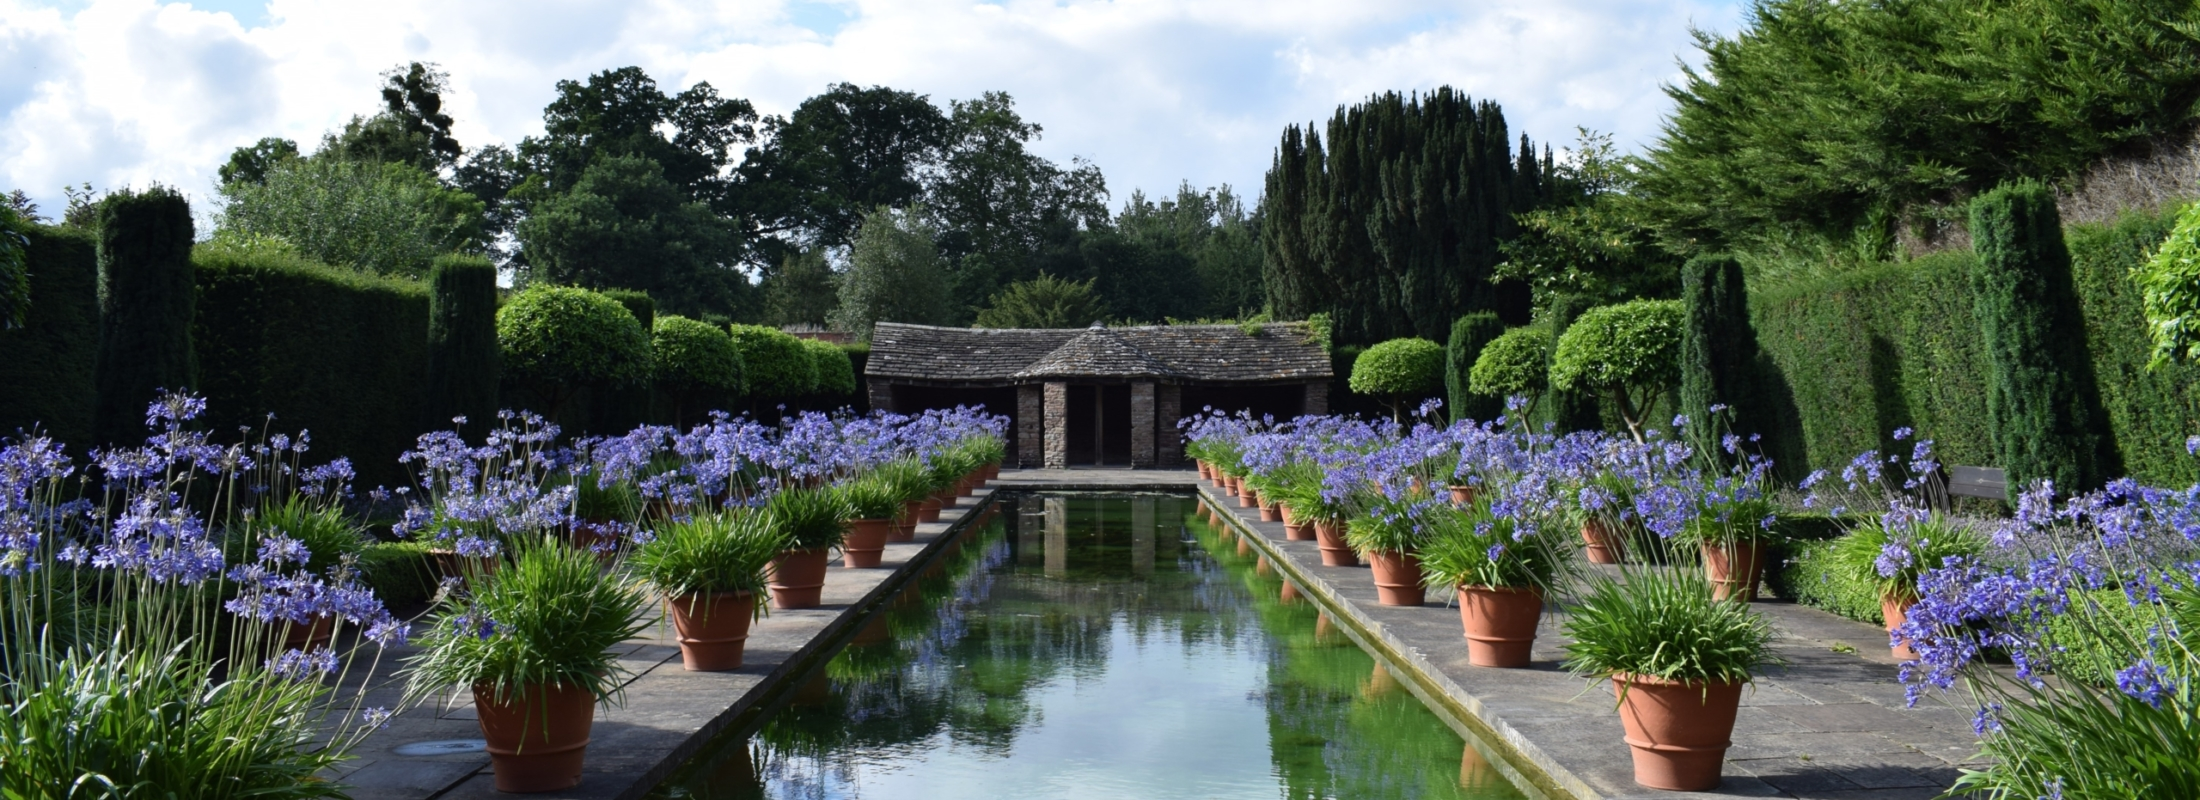 water canal with hut at the end and pots of purple flowers